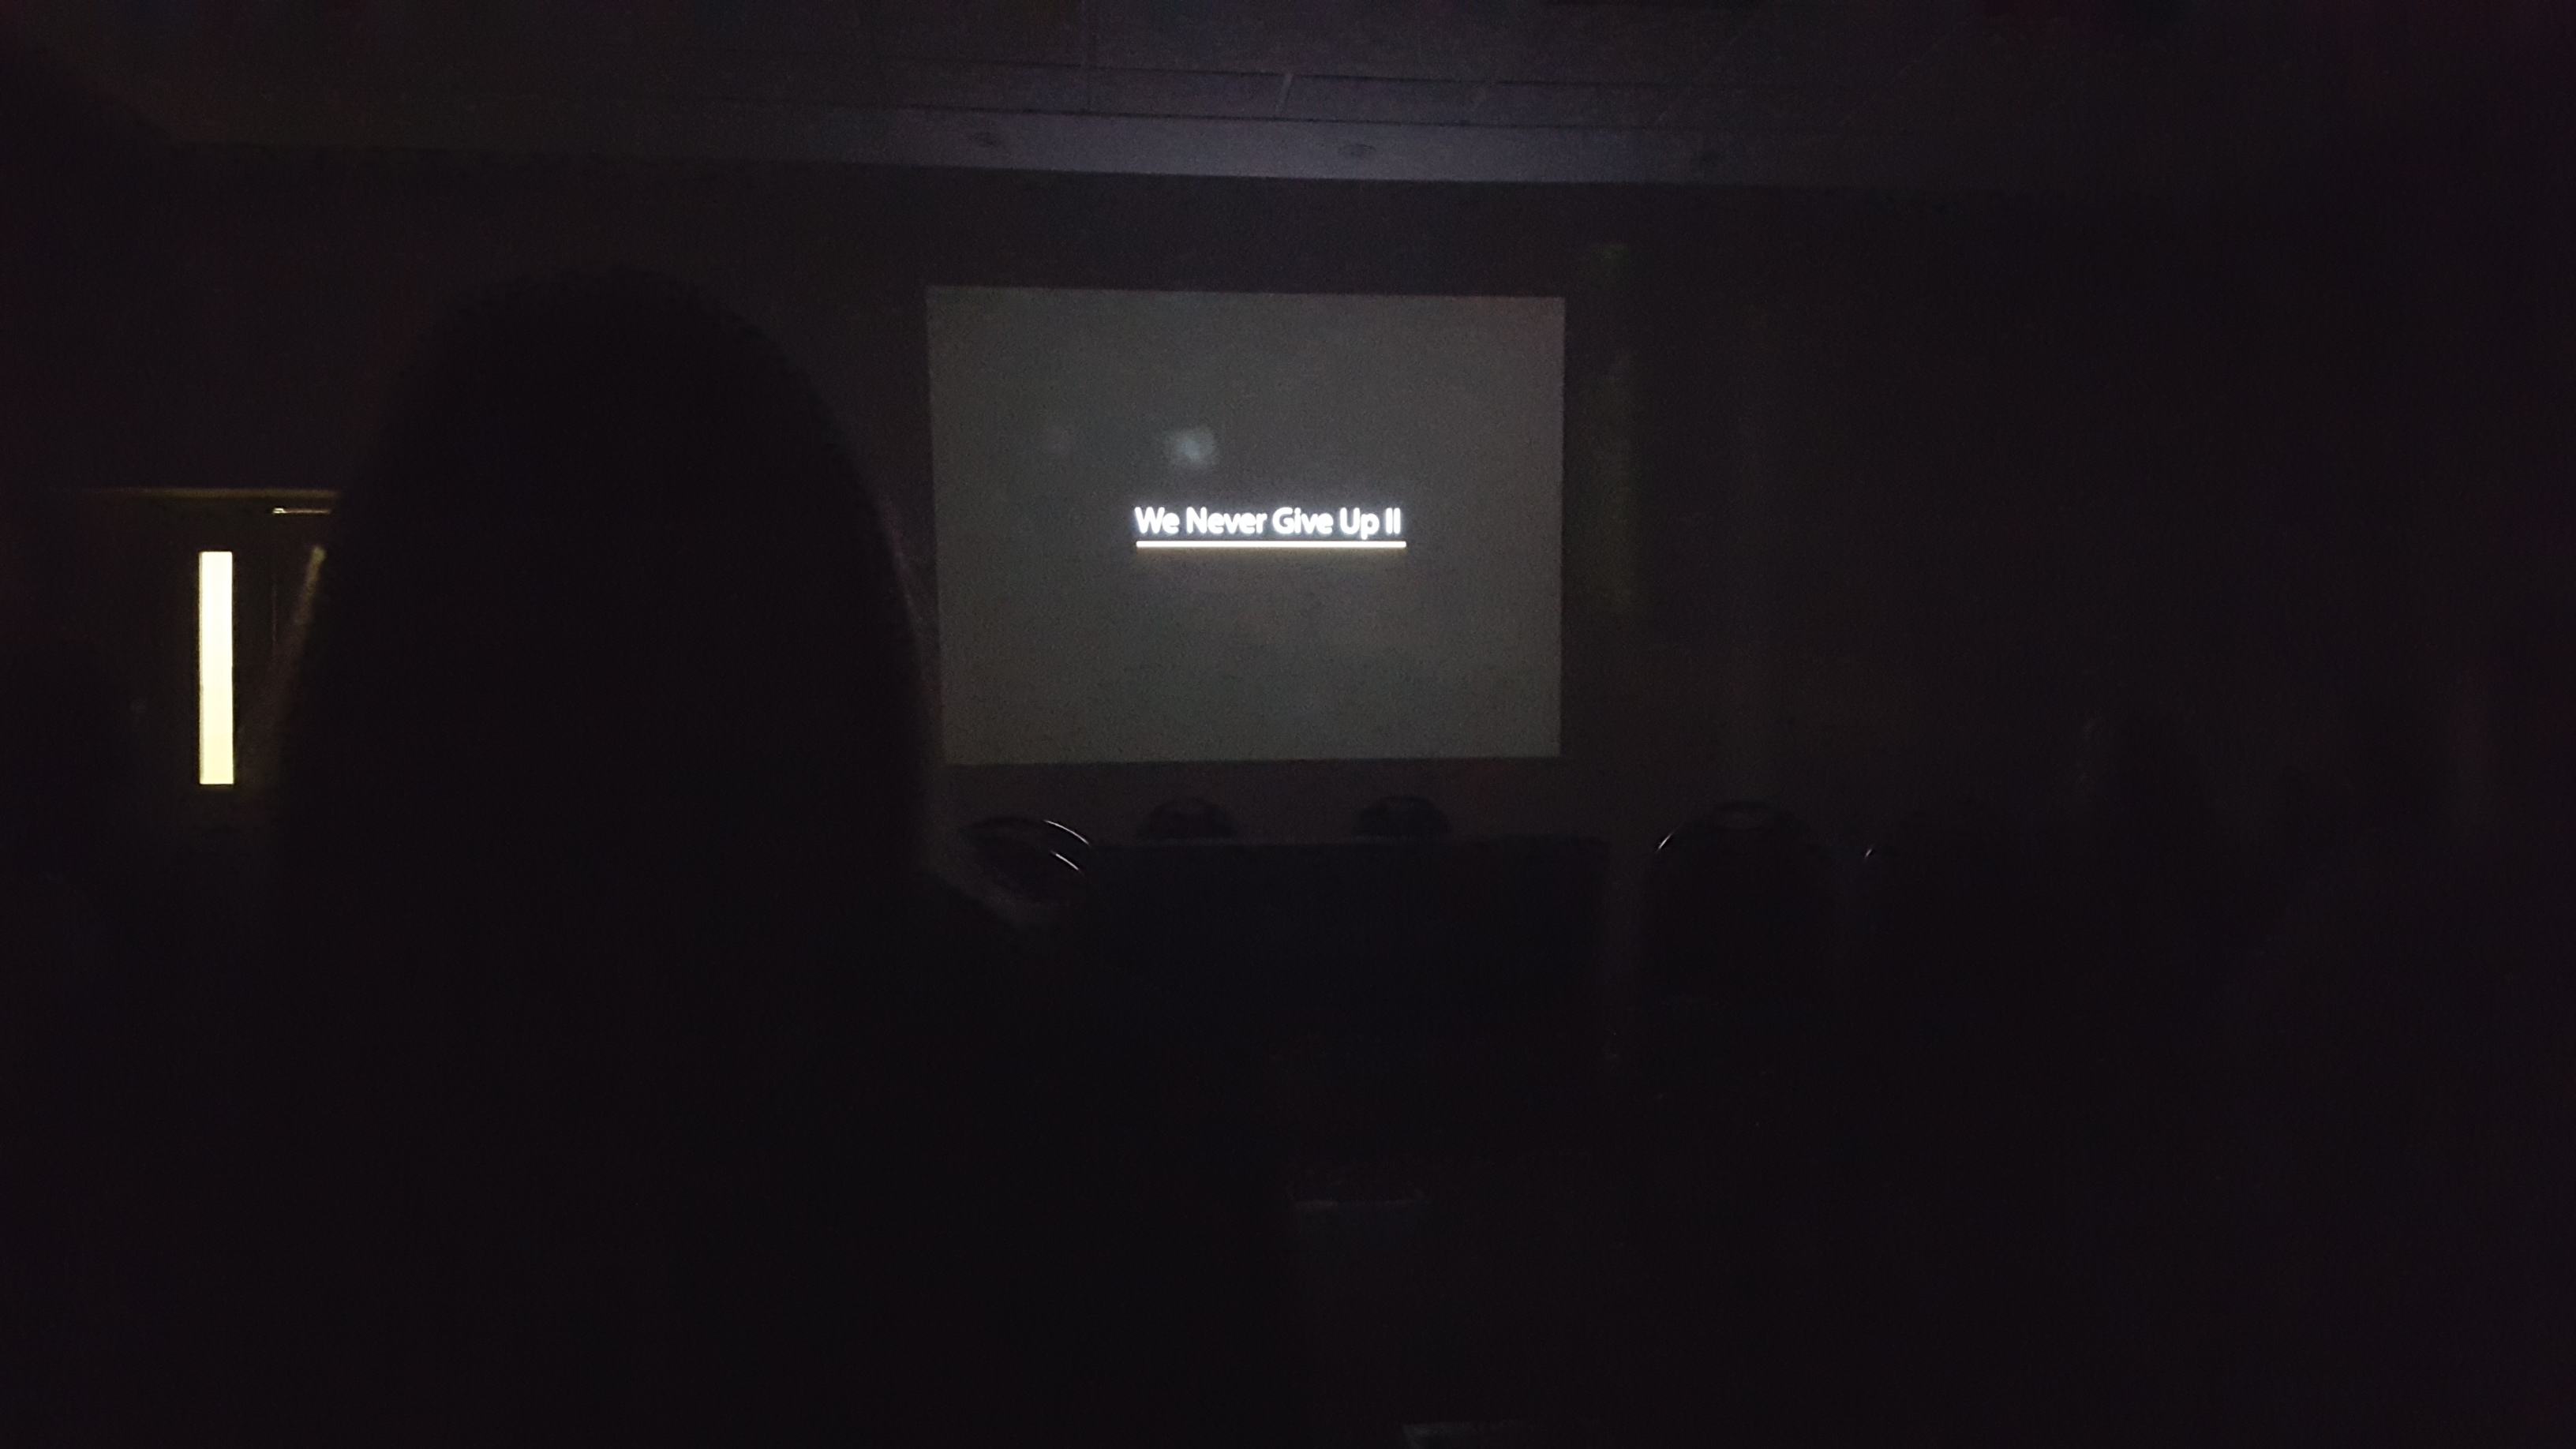 We Never Give Up II Screening